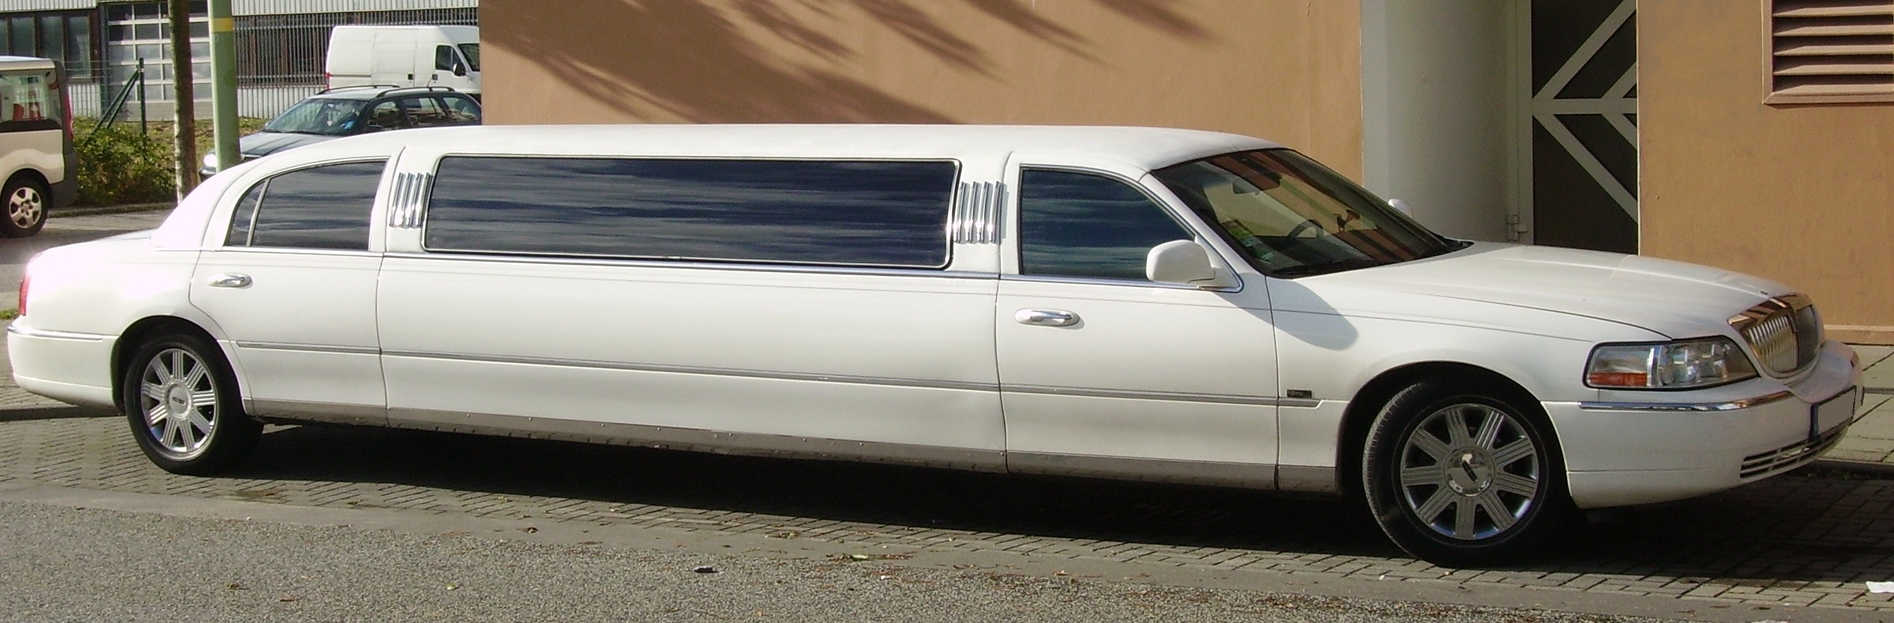 File Lincoln Town Car Stretch Limousine 09 Jpg Wikimedia Commons